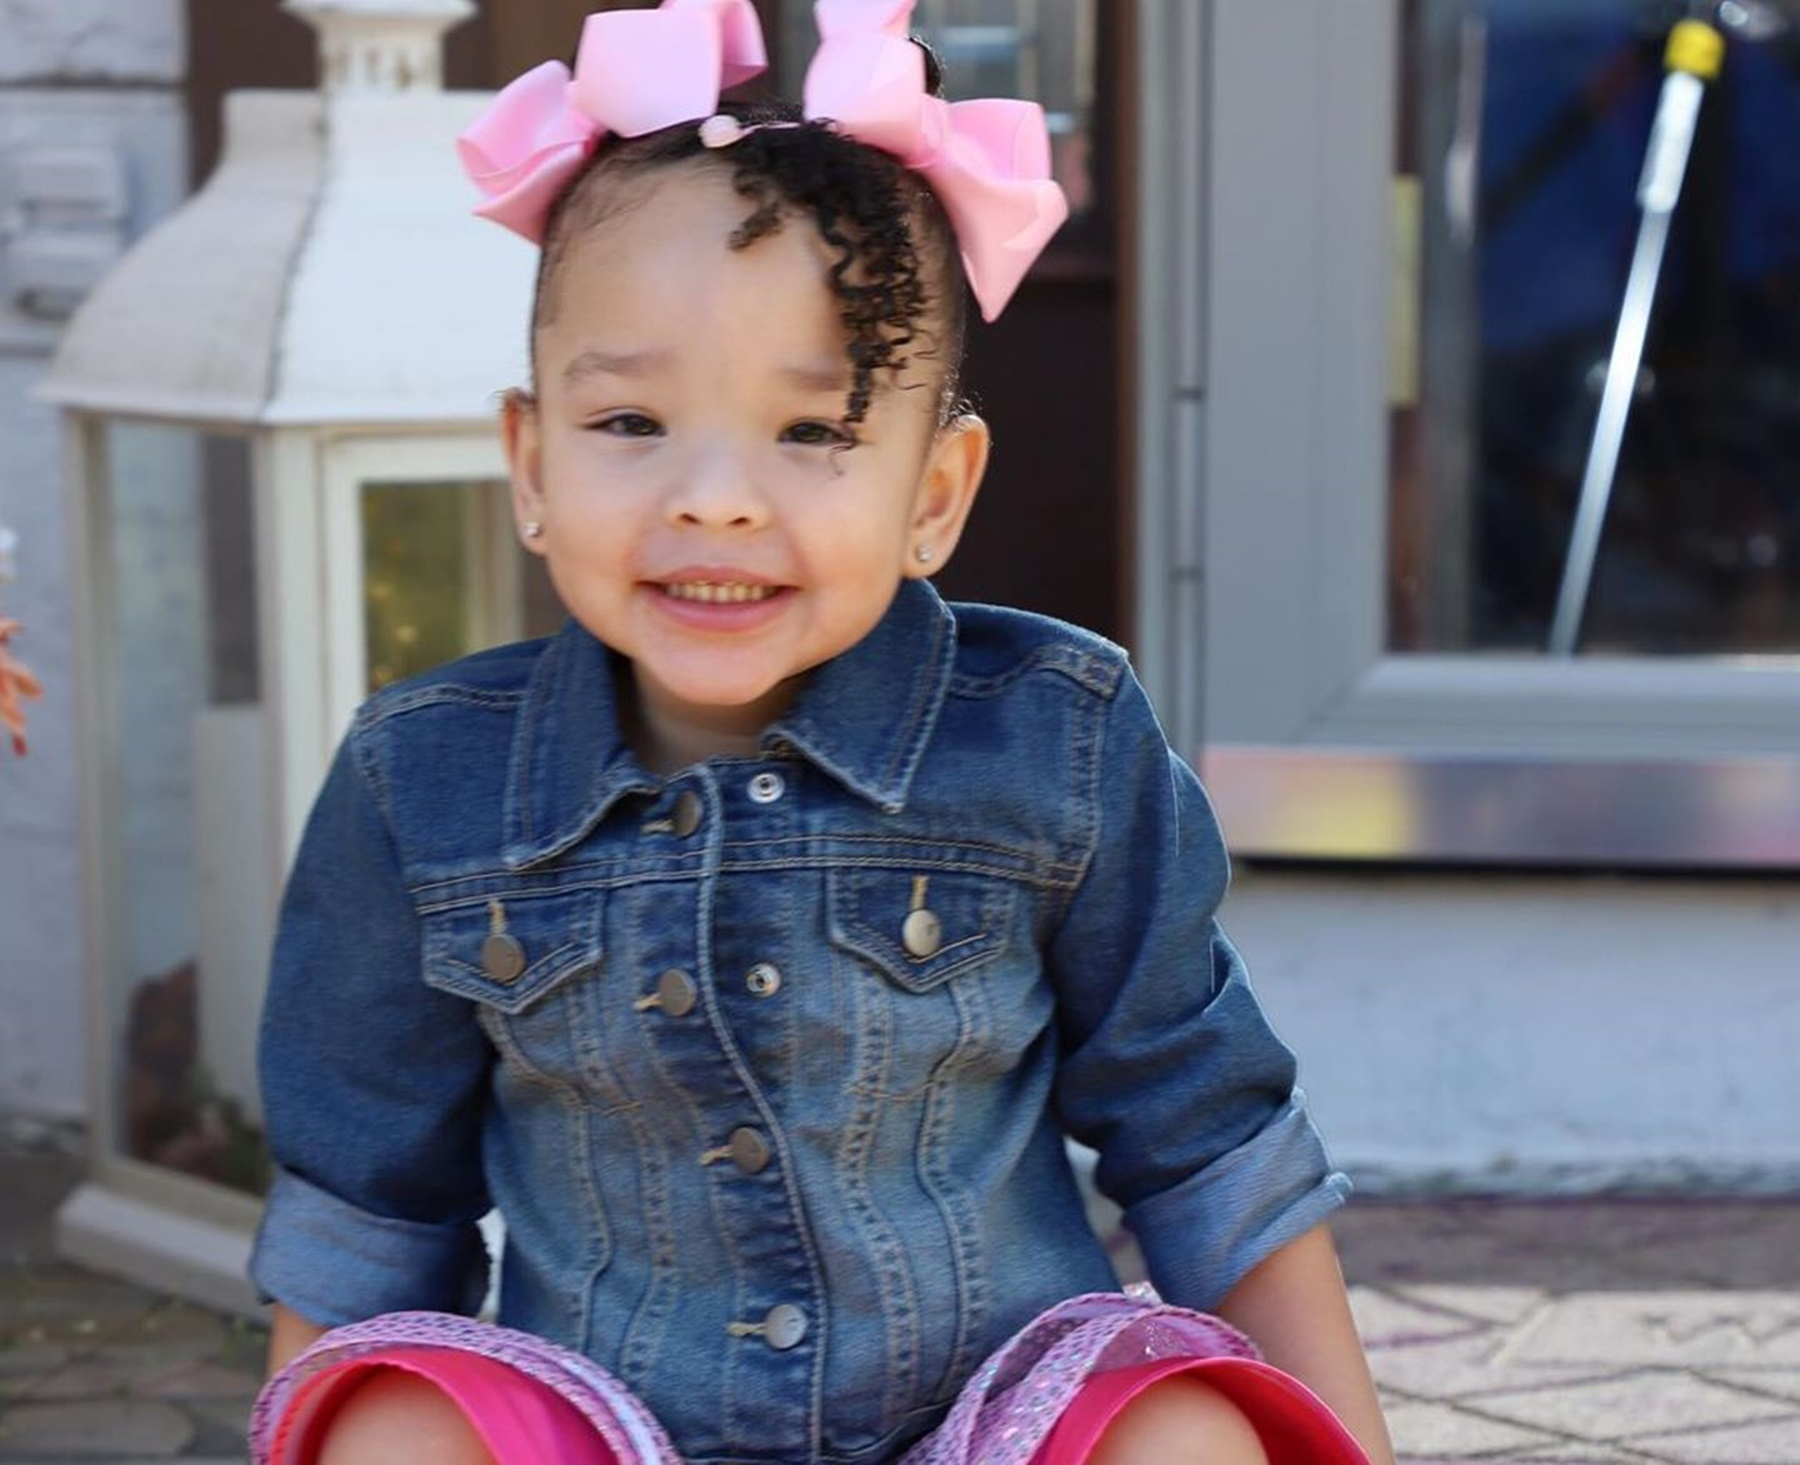 tiny-harris-daughter-heiress-turns-3-with-lavish-birthday-party-t-i-s-princess-was-startruck-by-this-celebrity-in-these-videos